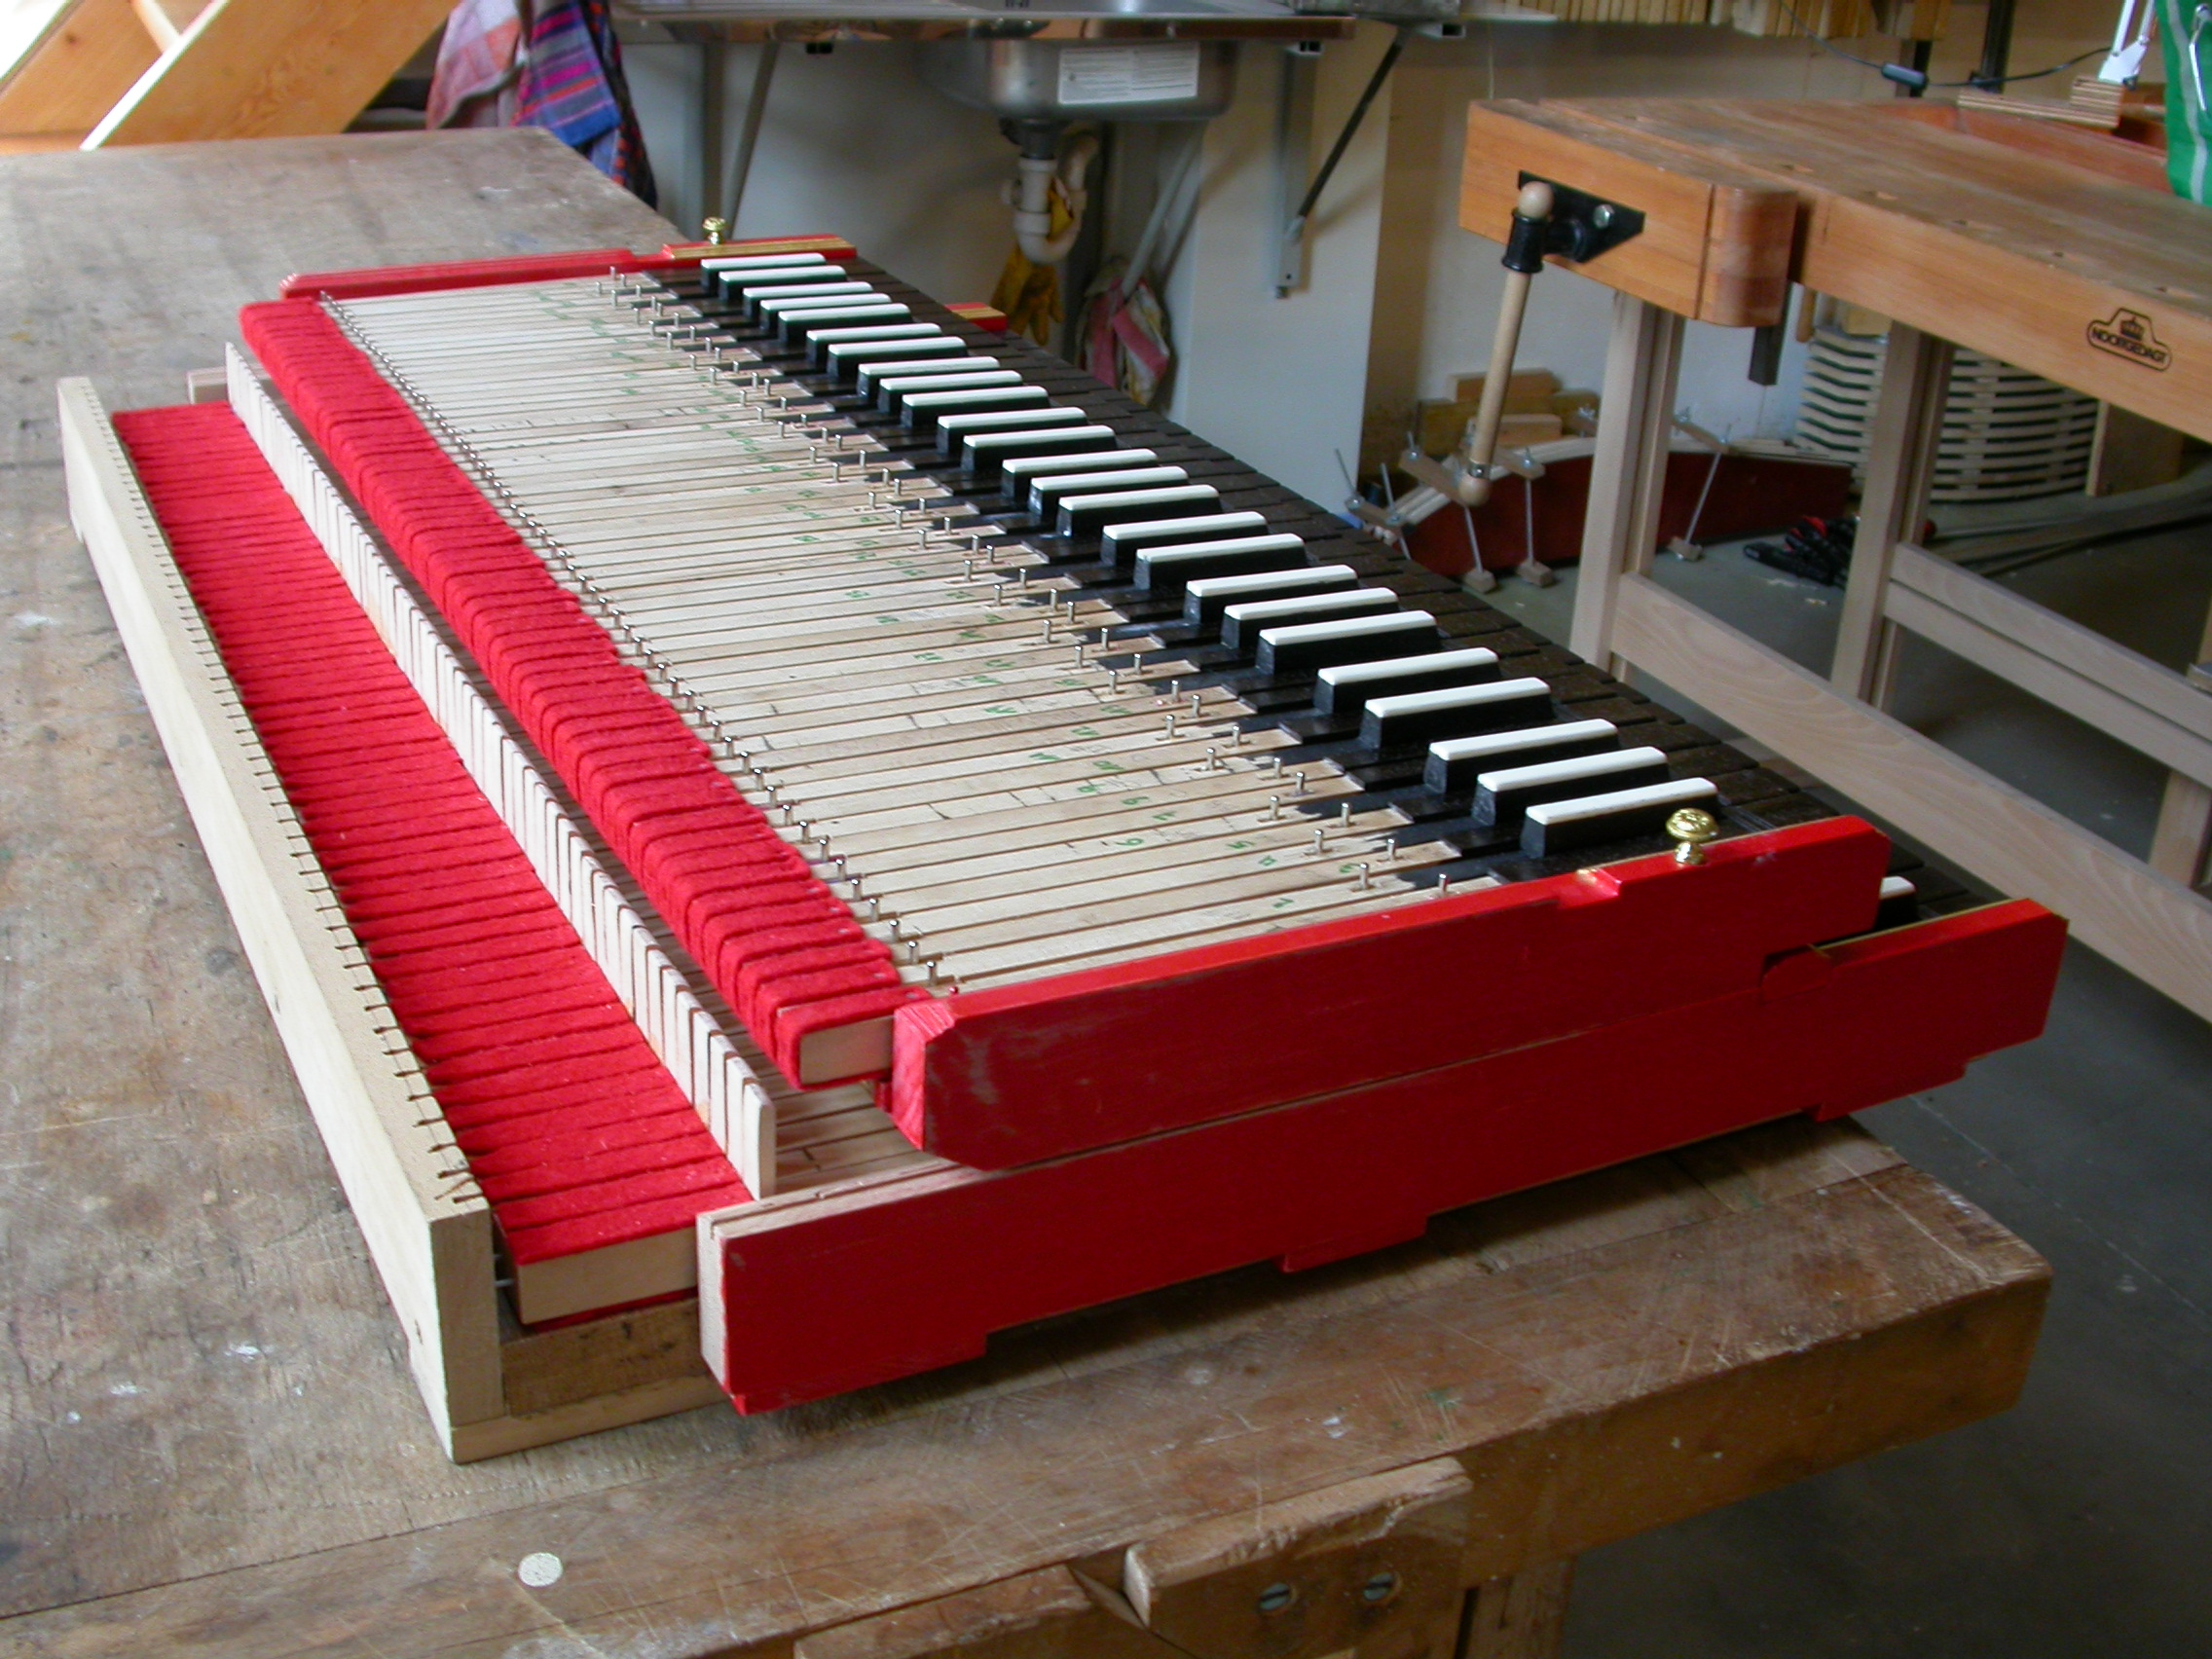 paul piano in the making instrument making creating school under construction keys music